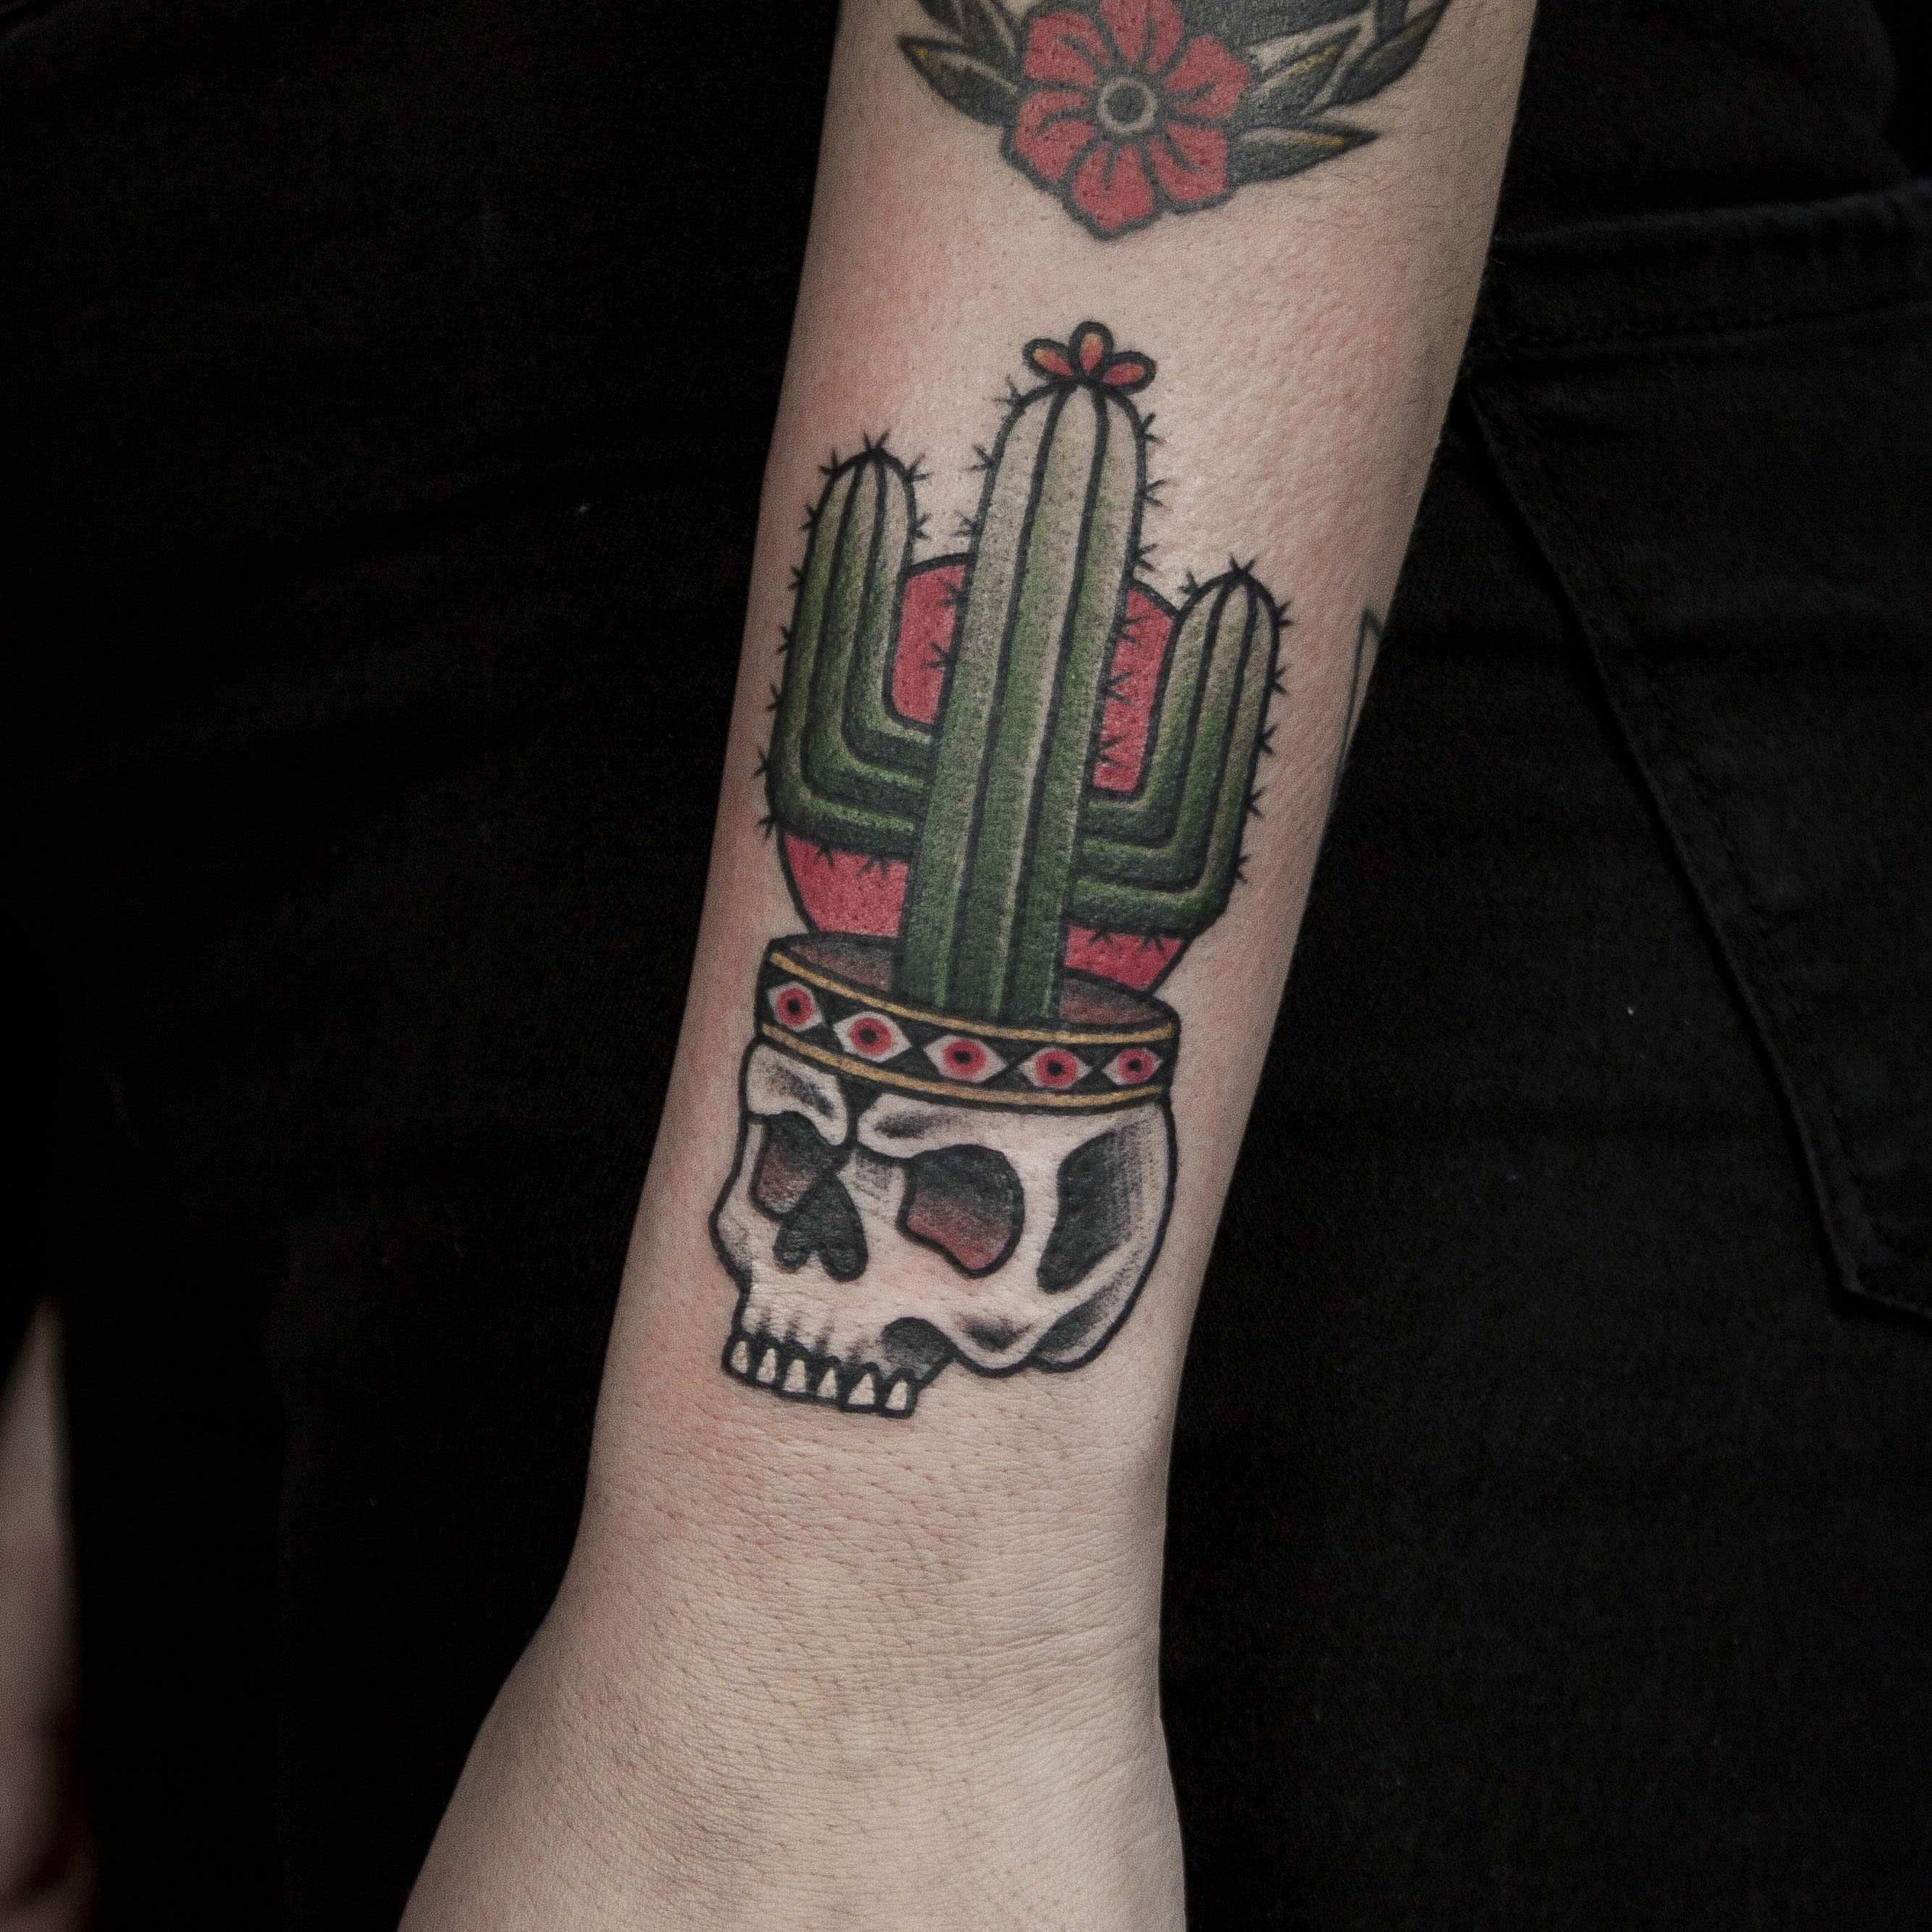 Tattoo brazo cactus no land tattoo parlour for The parlour tattoo